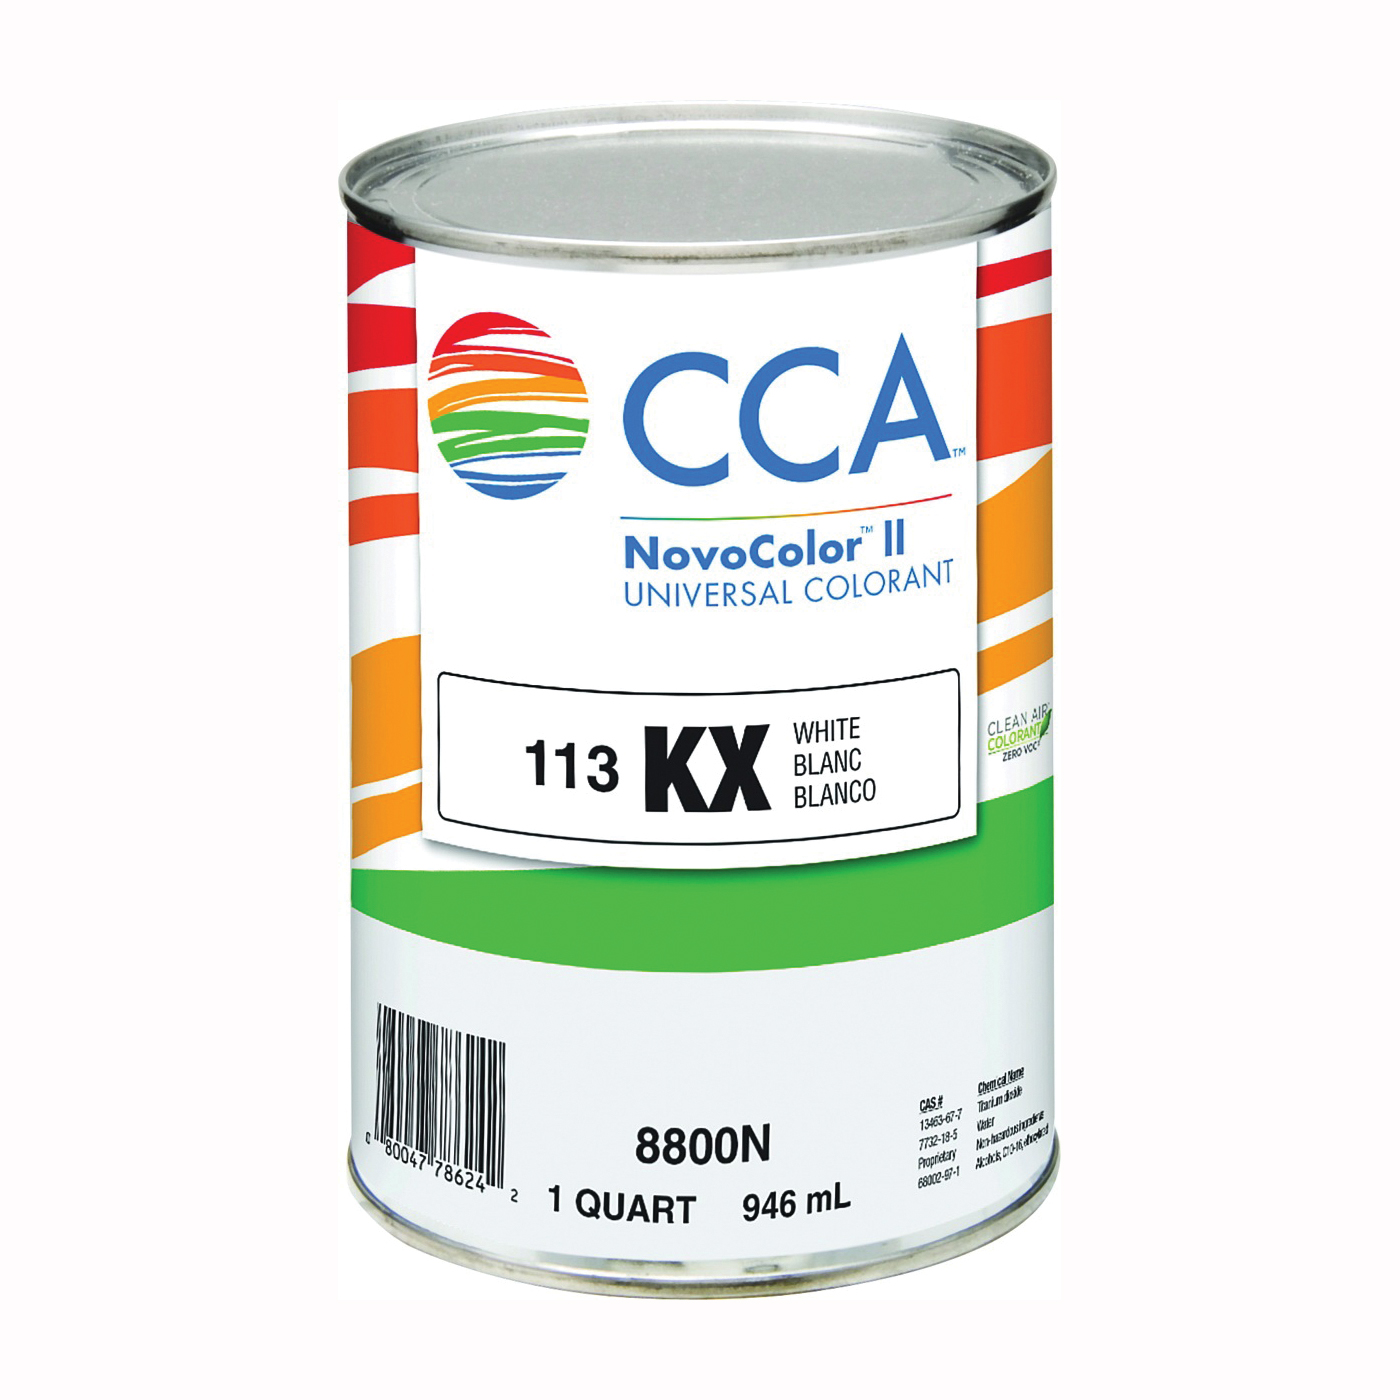 Picture of CCA NovoColor II 8800N Universal Colorant, White, Liquid, 1 qt Package